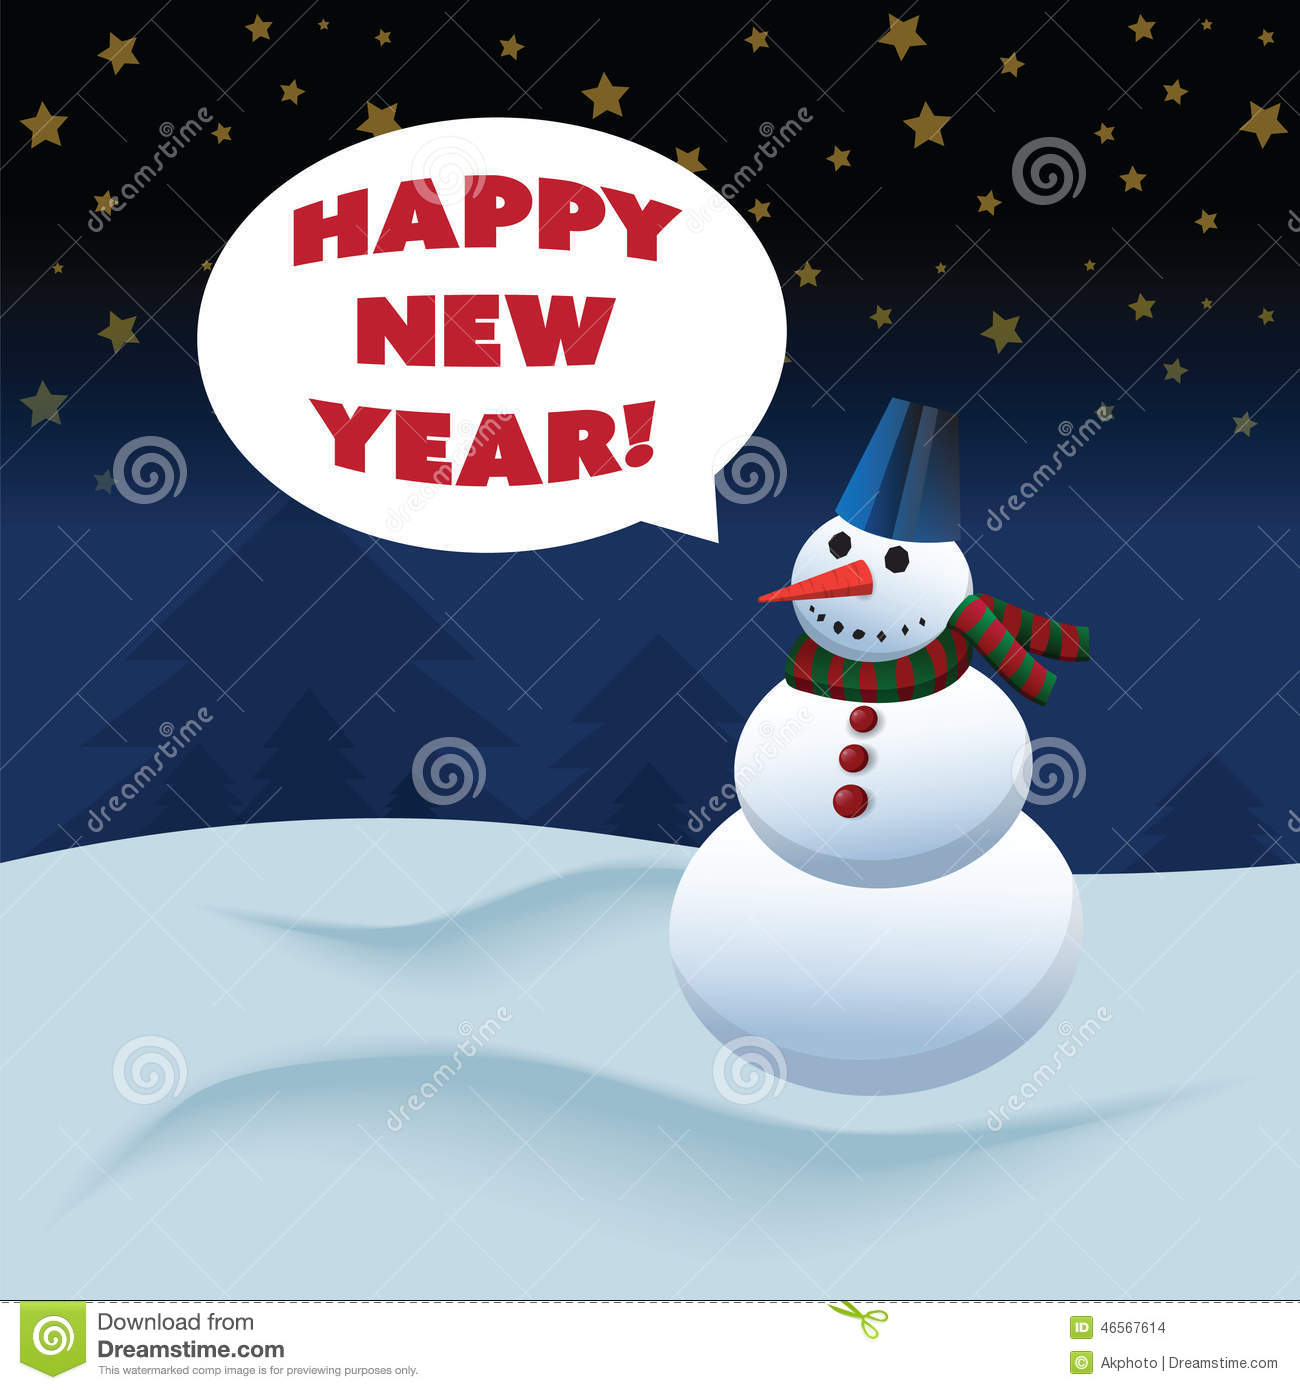 Snowman with happy new year text stock vector